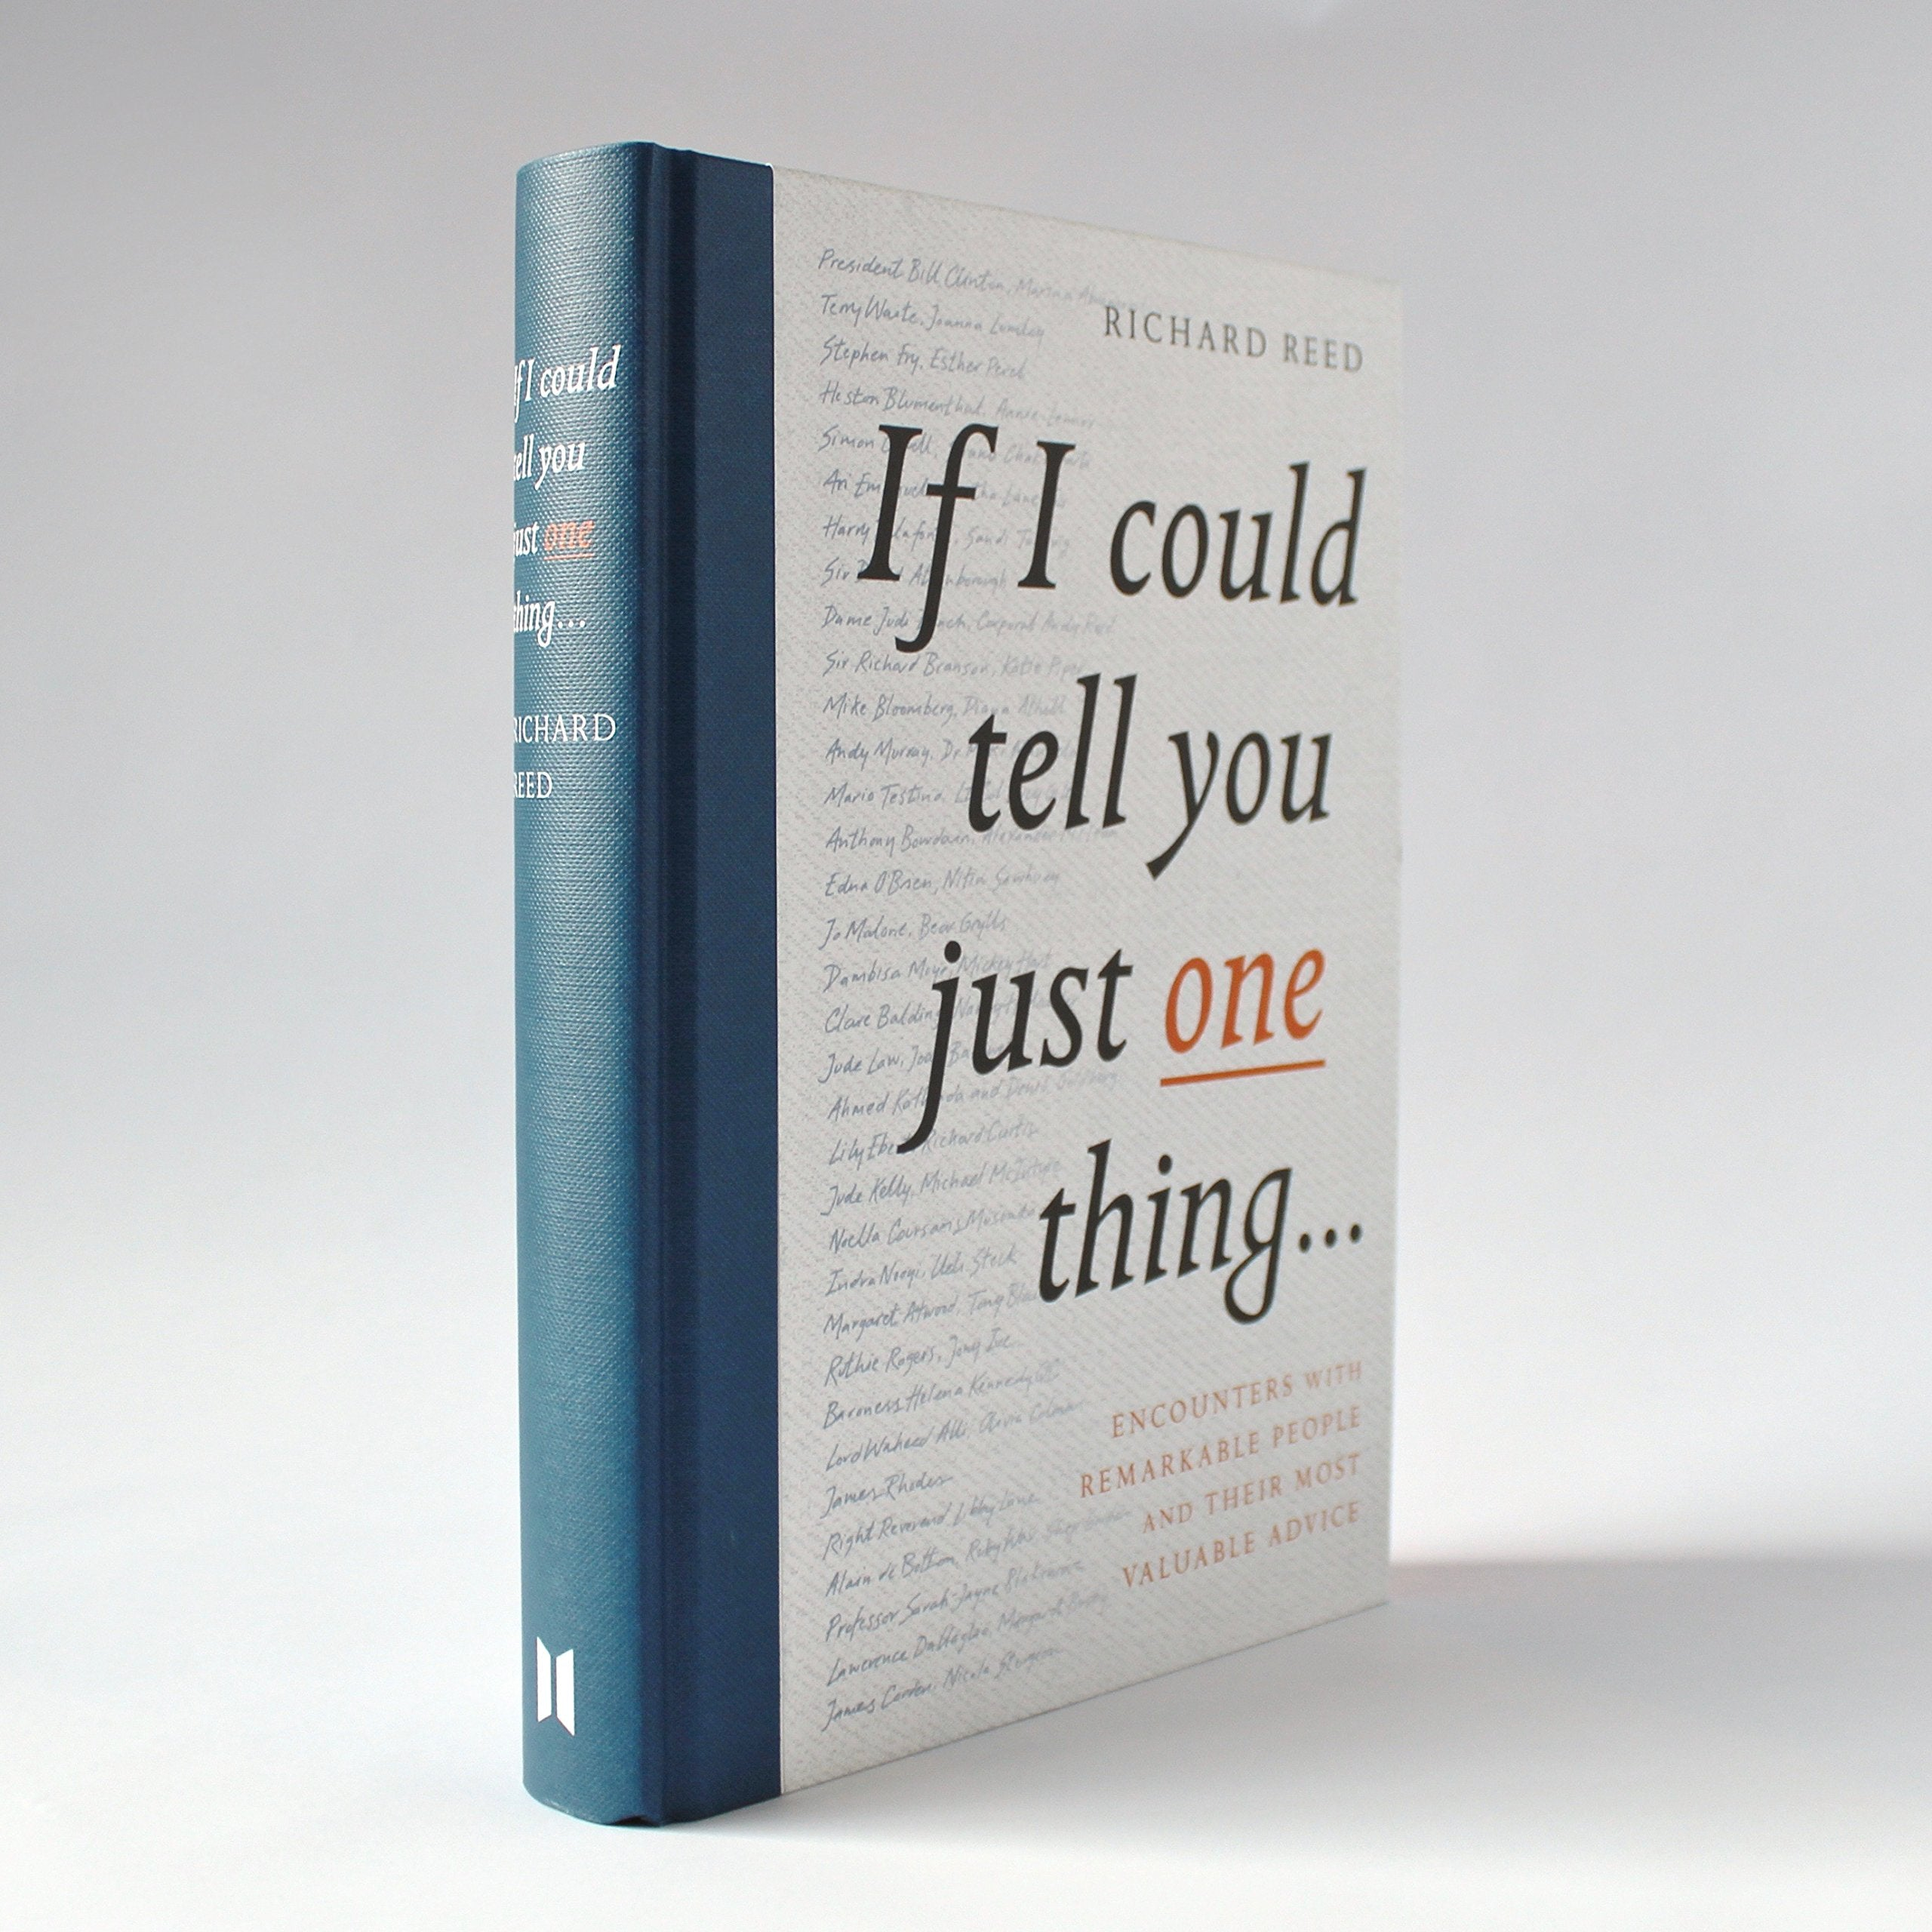 If I could tell you just one thing... book